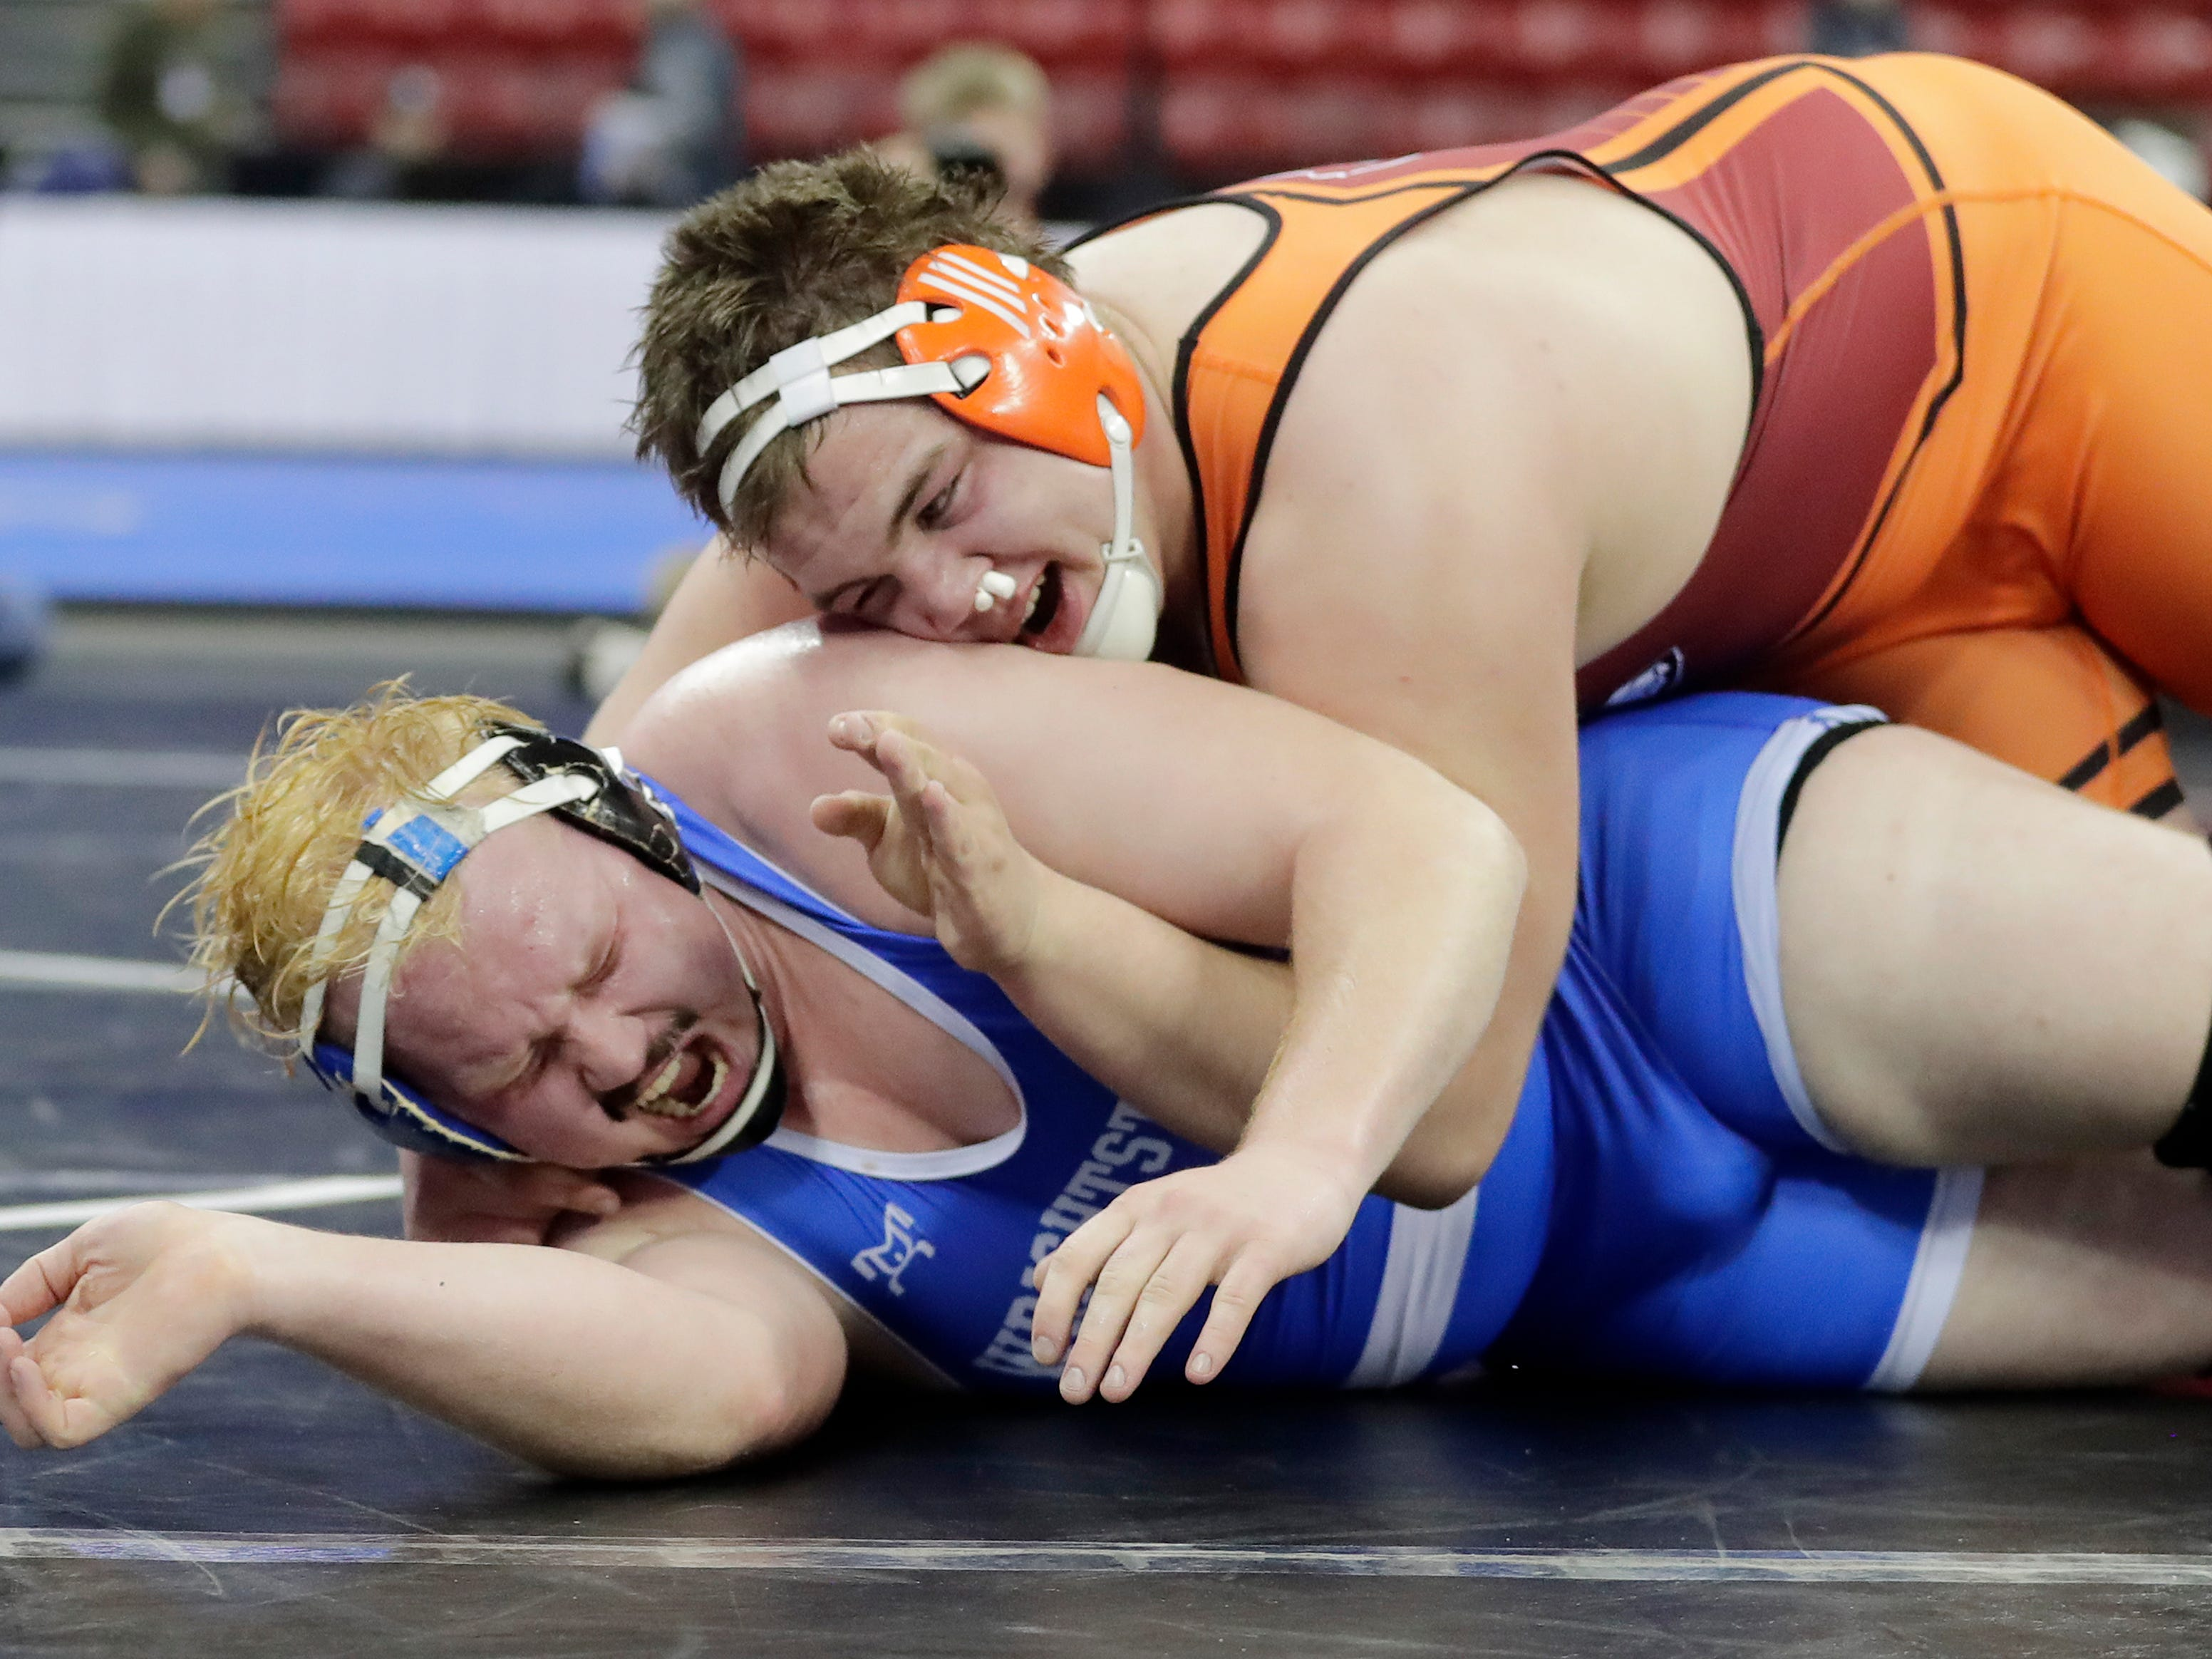 Belmont/Platteville's Dylan Schoenherr wrestles Wrightstown's Ethan Witcpalek in sudden victory of a Division 2 285-pound preliminary match at the WIAA state individual wrestling tournament at the Kohl Center on Thursday, February 21, 2019 in Madison, Wis.